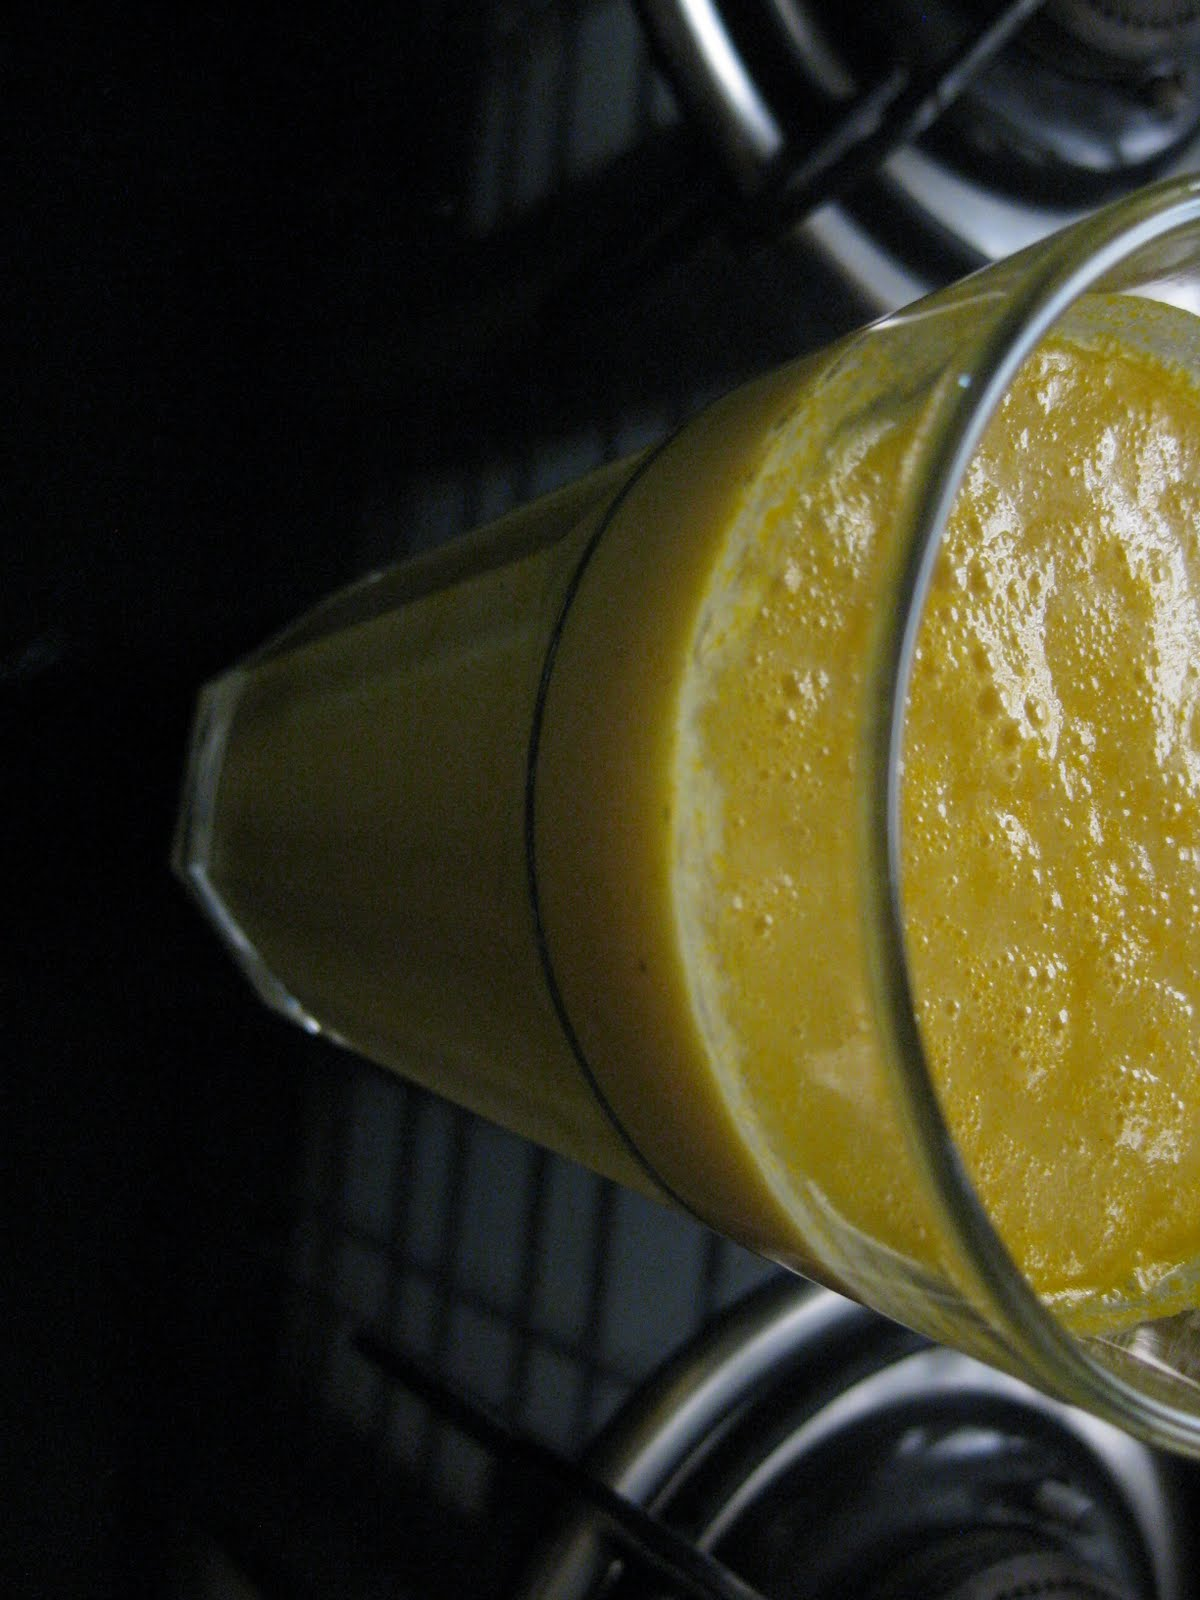 FOOD FASCINATION: Musk Melon (cantaloupe) Smoothie